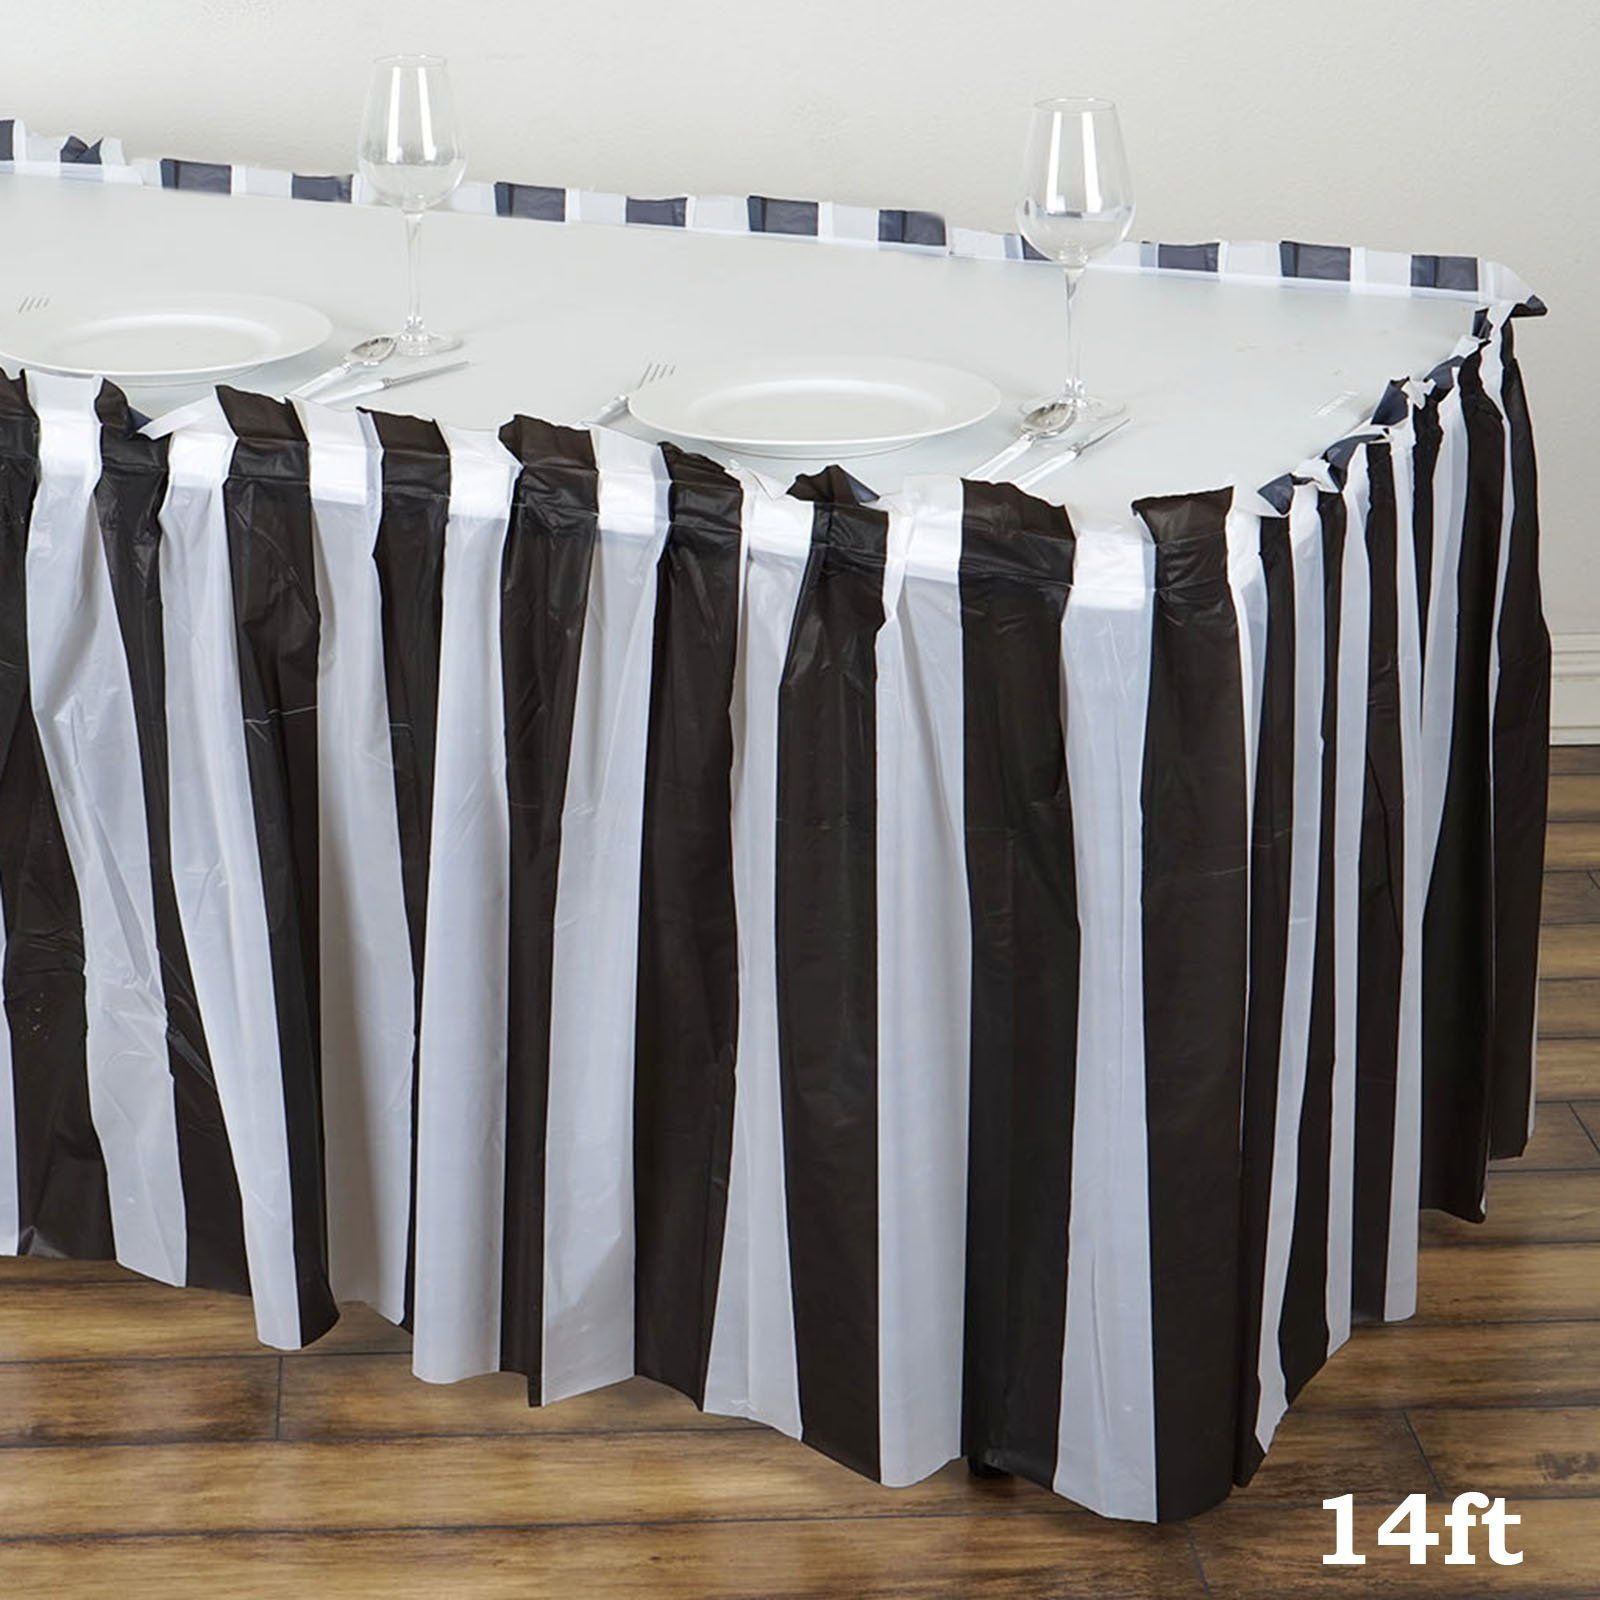 14ft 10 Mil Thick Stripe Plastic Table Skirts Disposable Table Skirt Spill Proof White Black Table Skirt White Plastic Table Plastic Tables